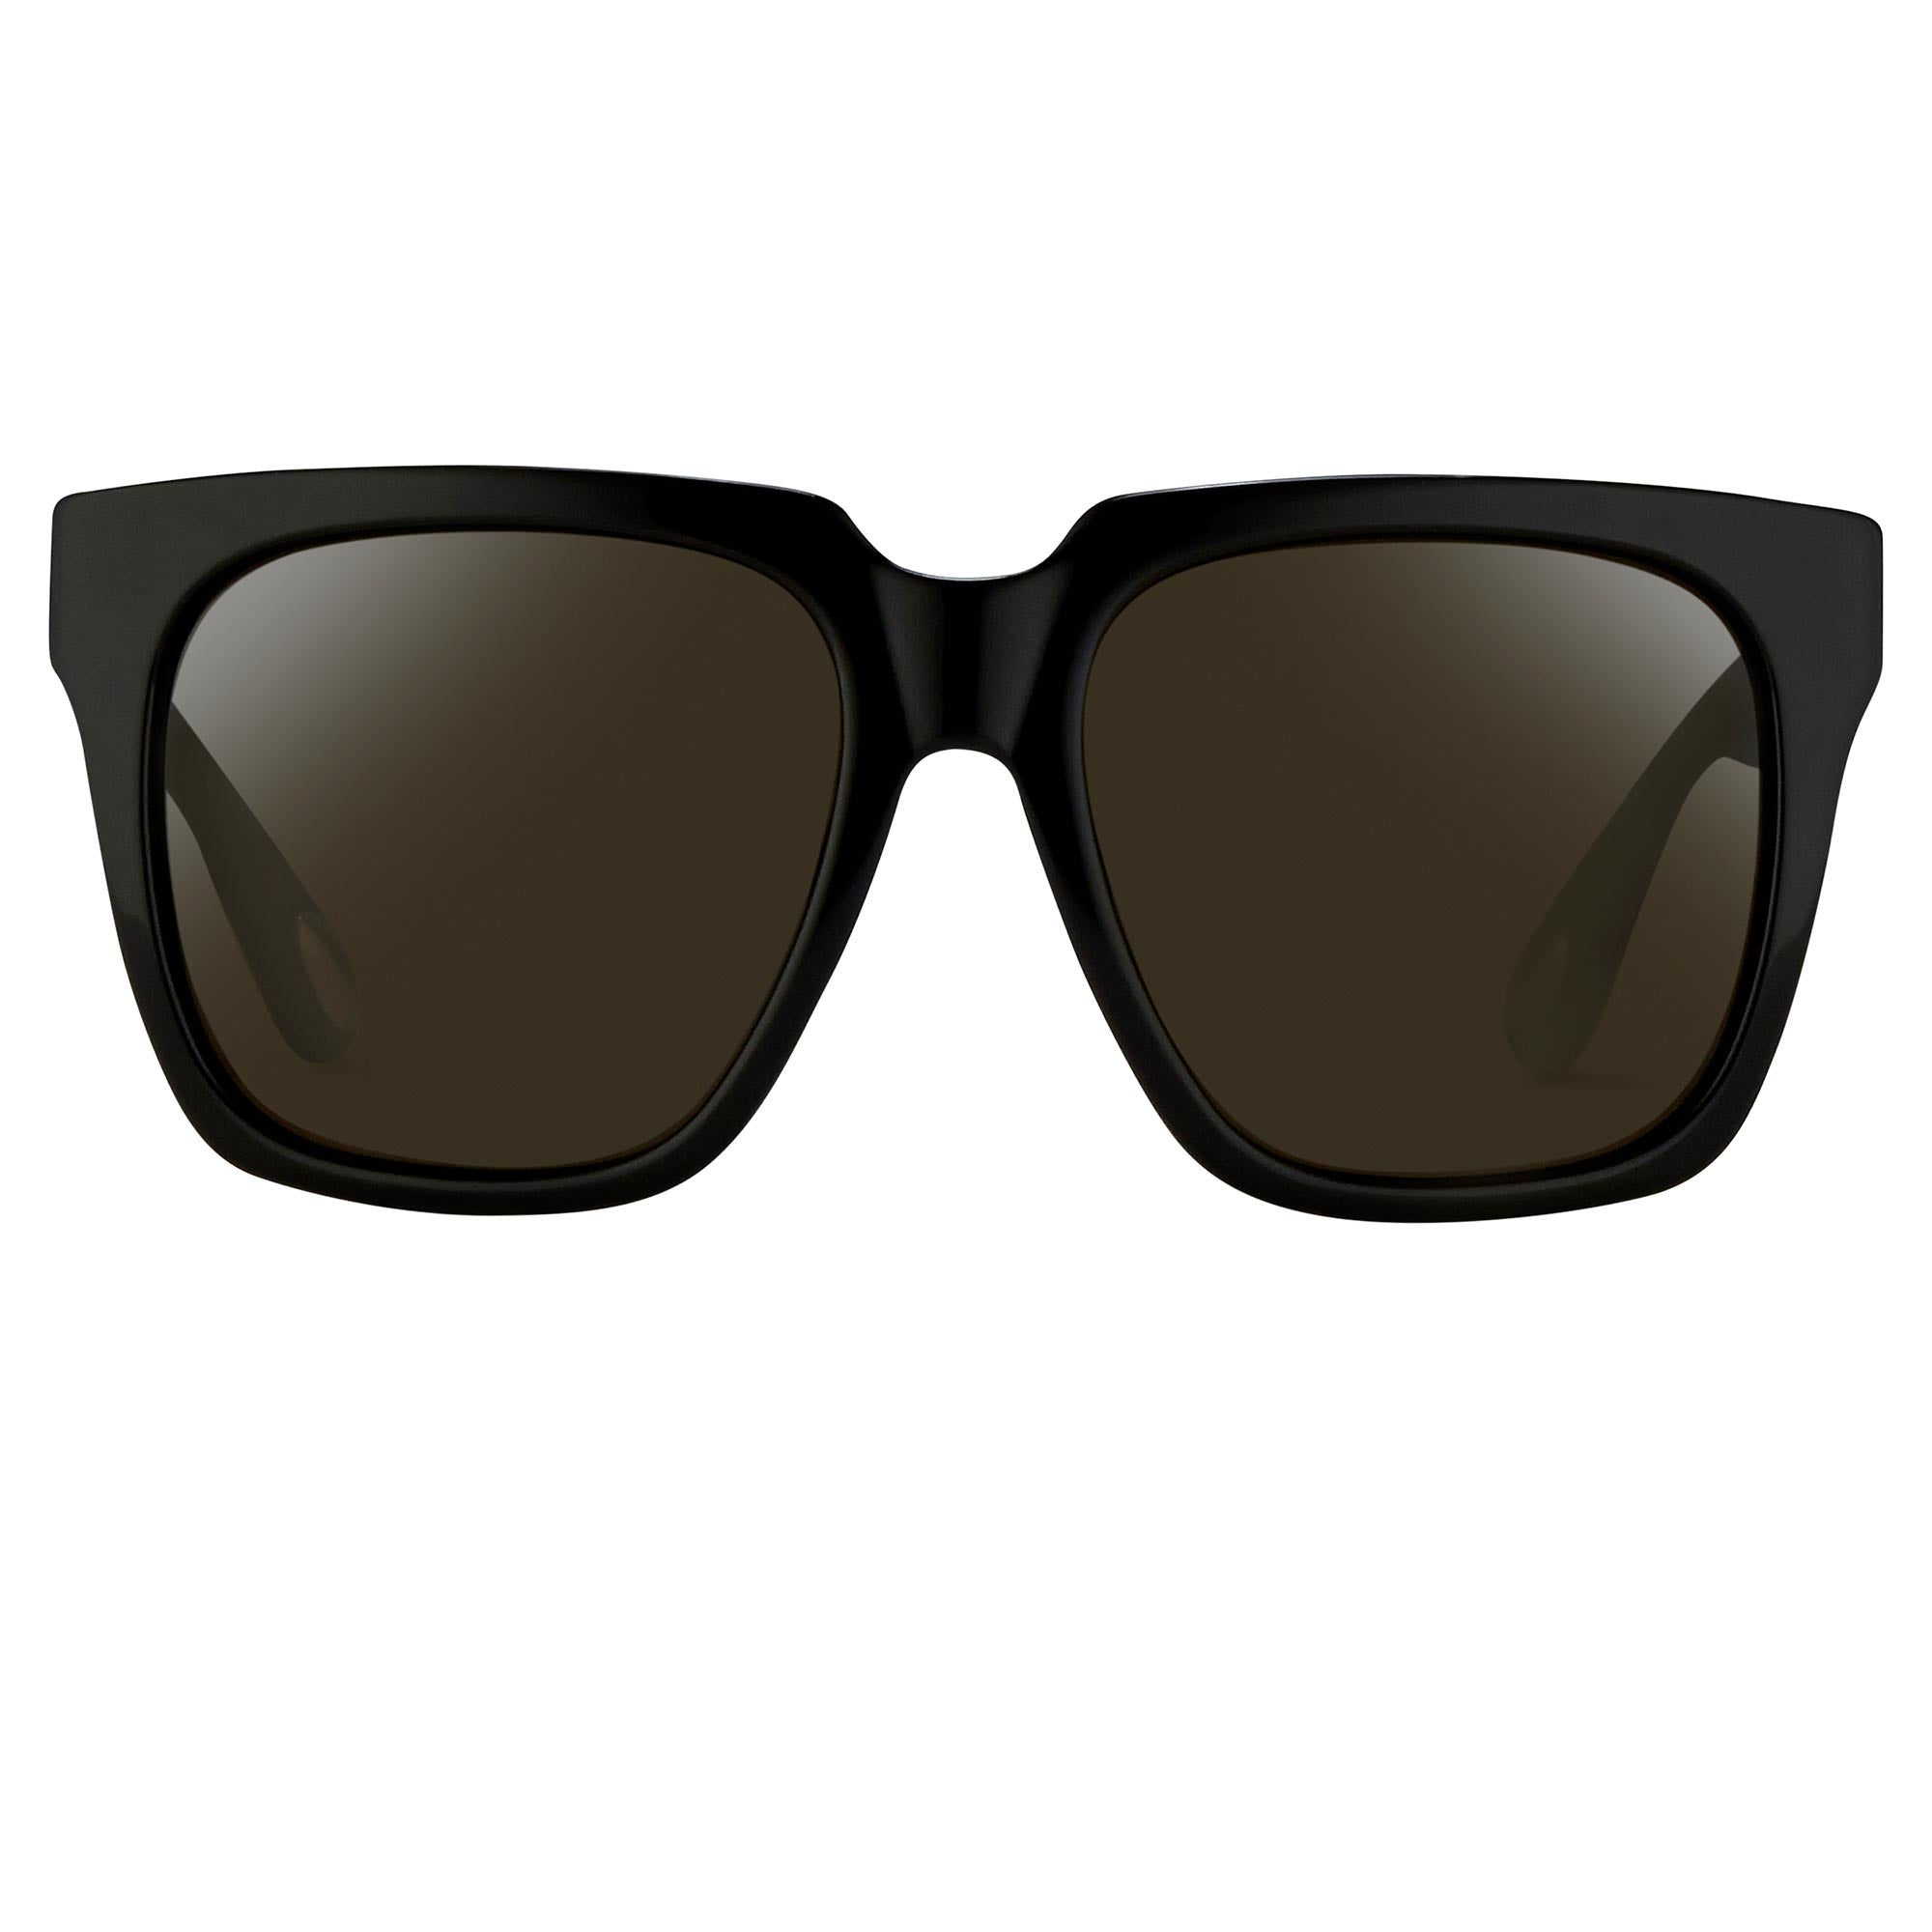 Ann Demeulemeester Sunglasses Oversized Matte Black with Grey Lenses Category 4 Dark Tint 925 Silver AD21C1SUN - Watches & Crystals